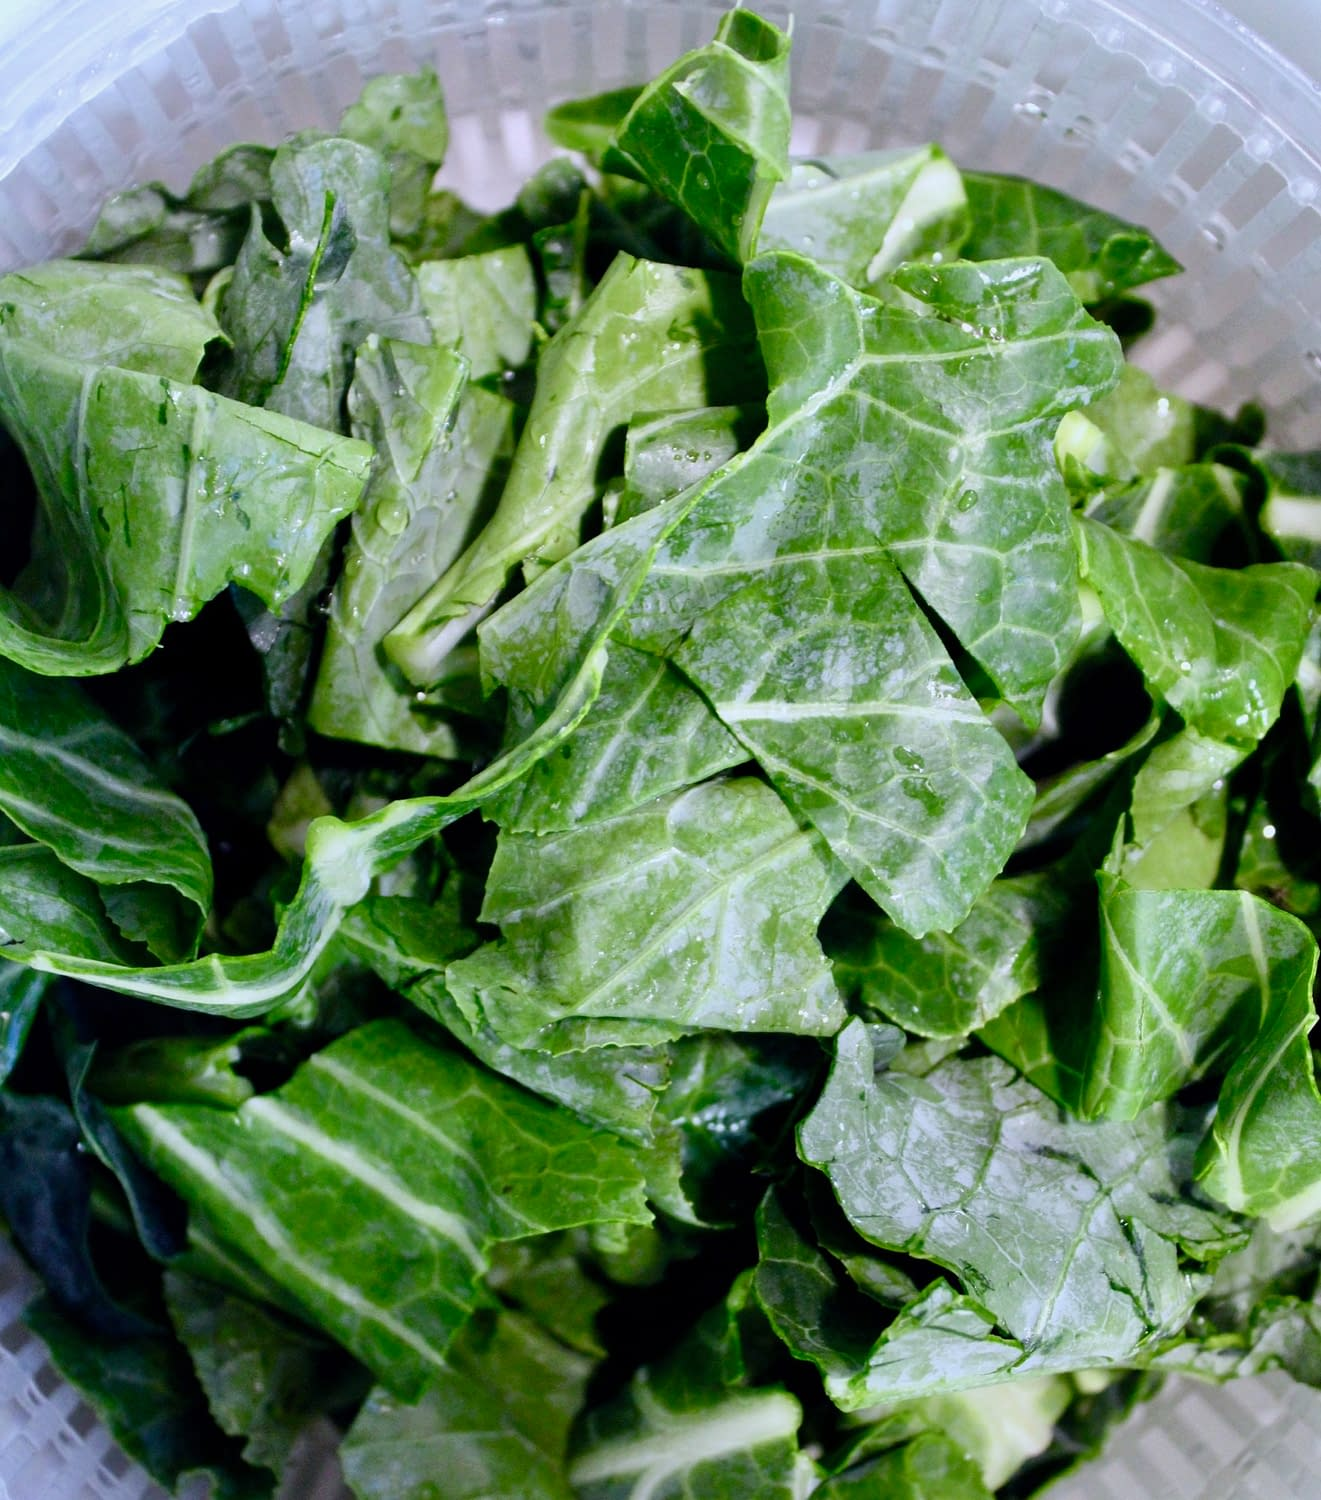 Collared Greens in the salad spinner.